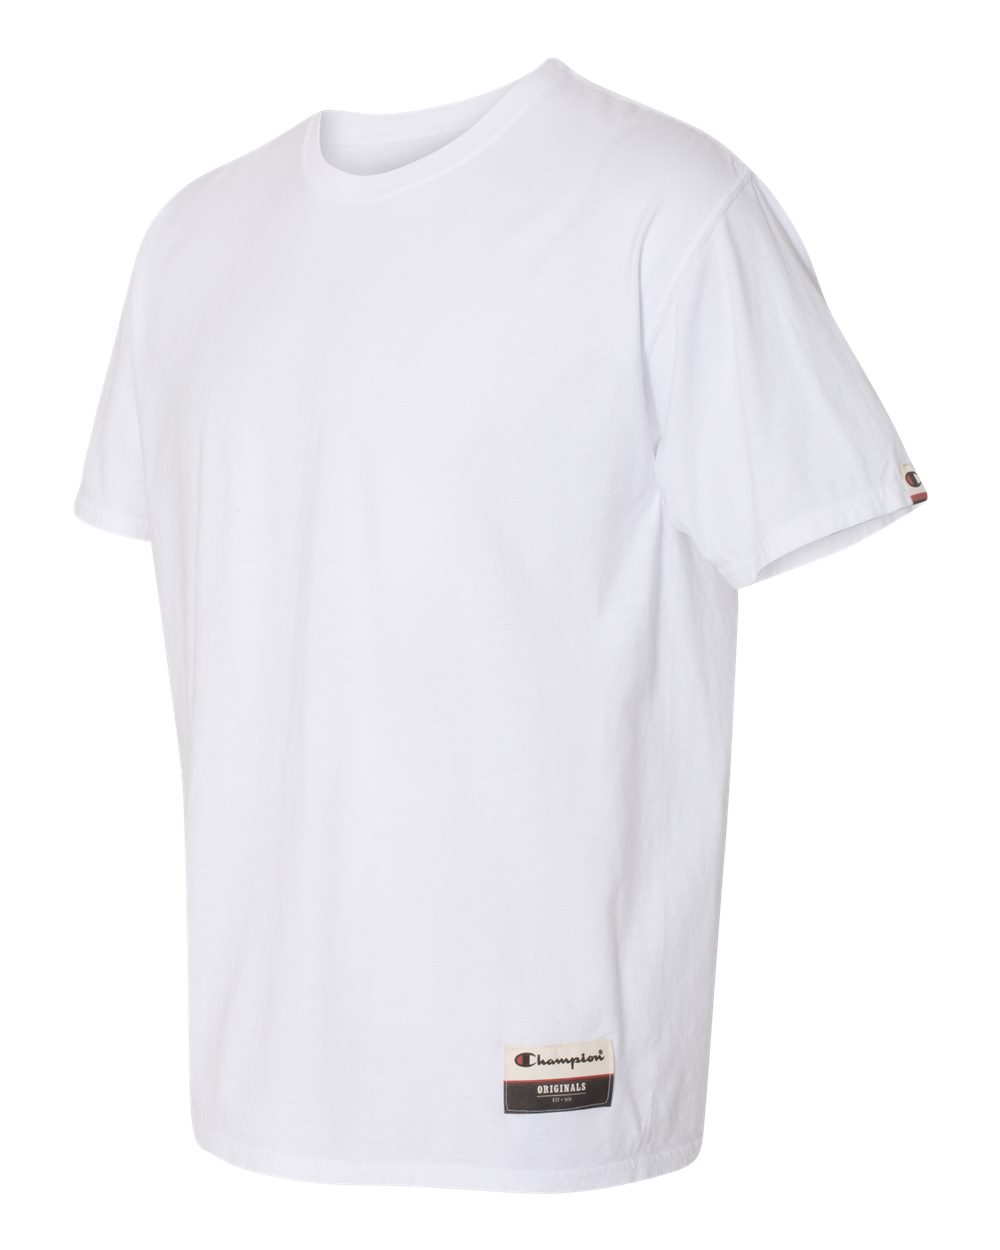 Champion AO200 - Authentic Originals Soft-Wash T-Shirt